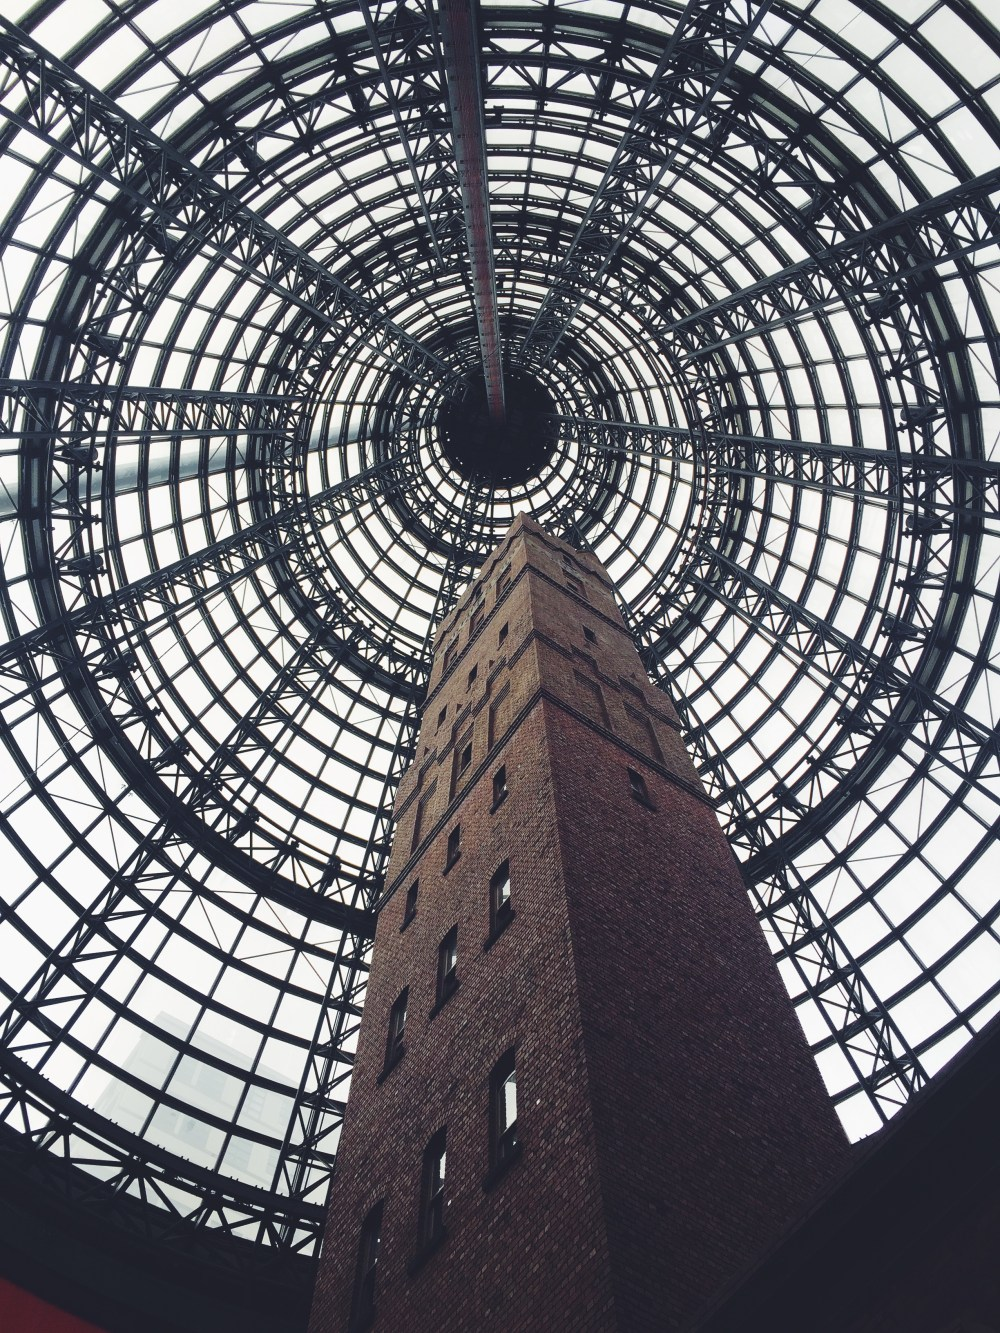 1 July 2016: Coop's Shot Tower | Melbourne CBD, Victoria